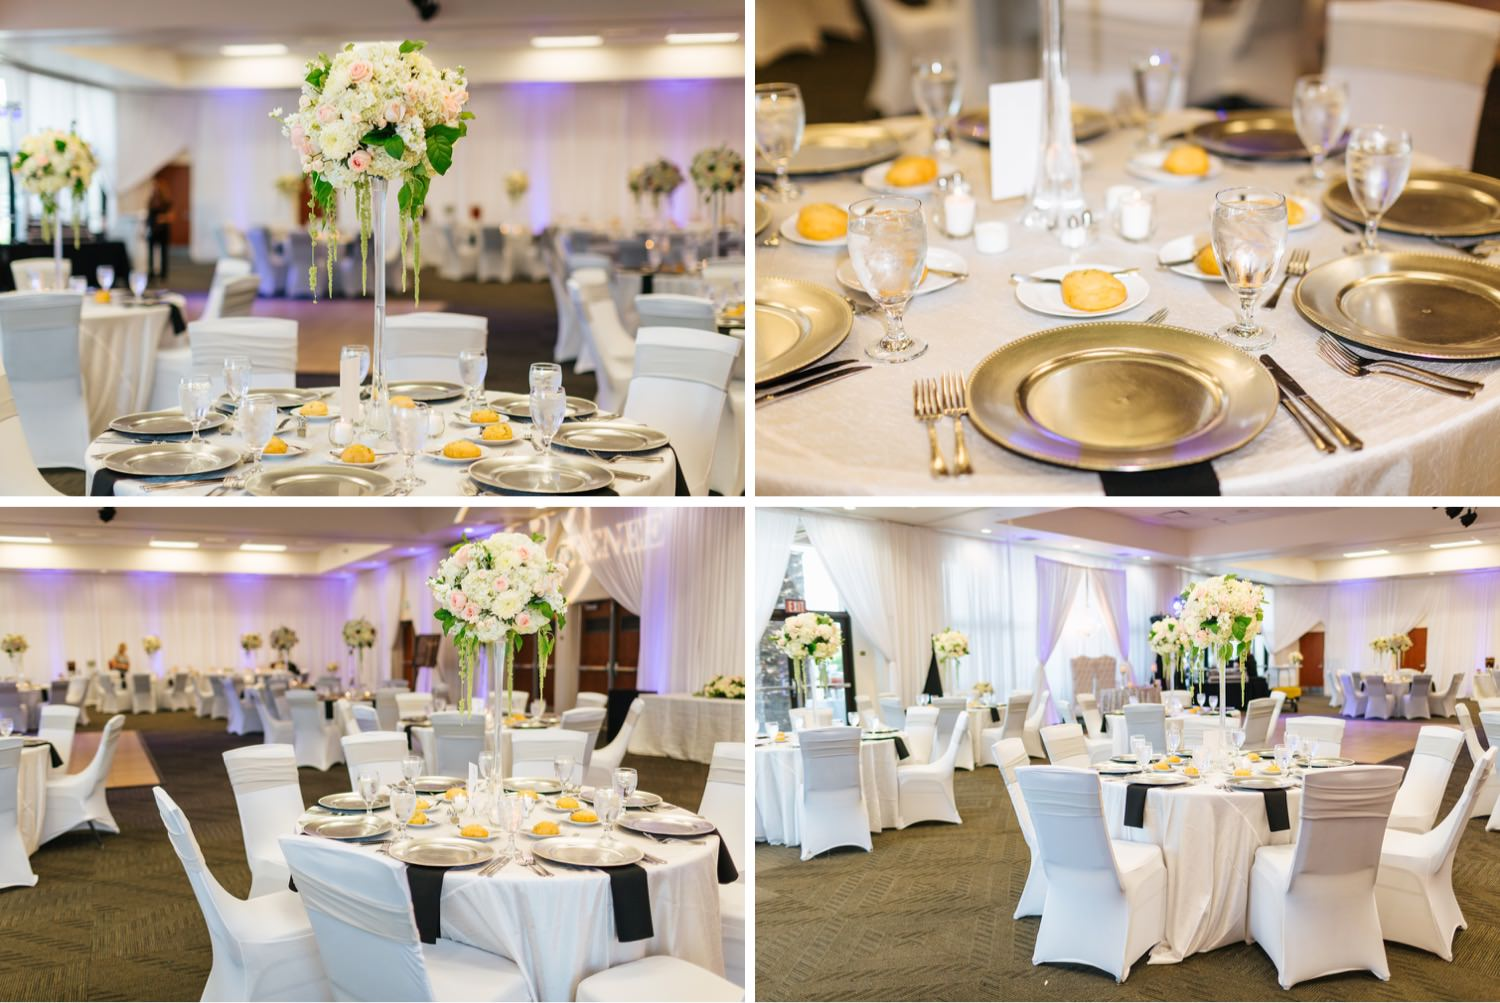 Reception Details and Decor at Chino Hills Community Center - https://brittneyhannonphotography.com